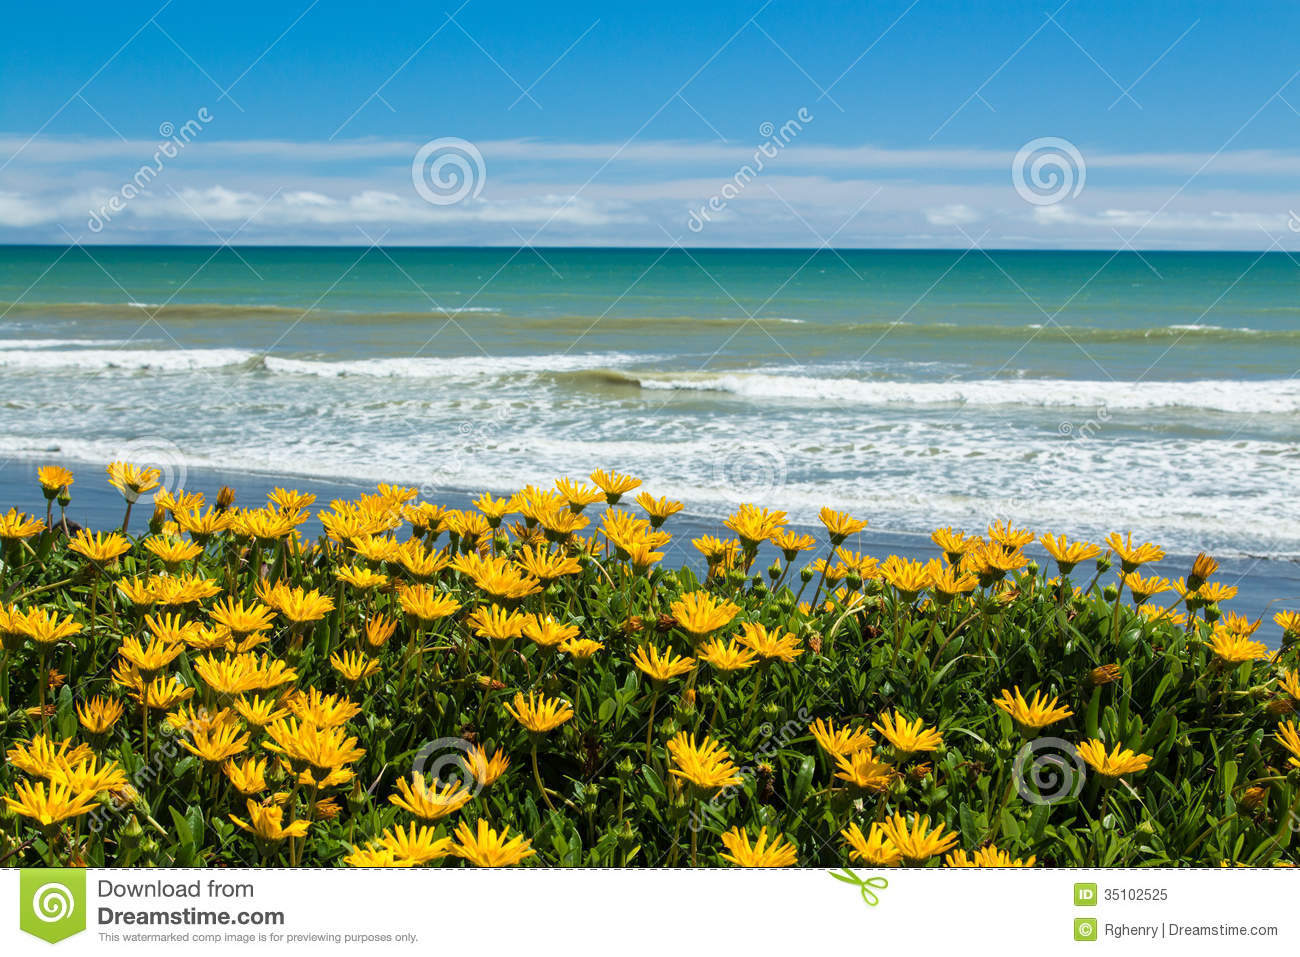 Wonderful bright yellow beach flower growing along a beach.